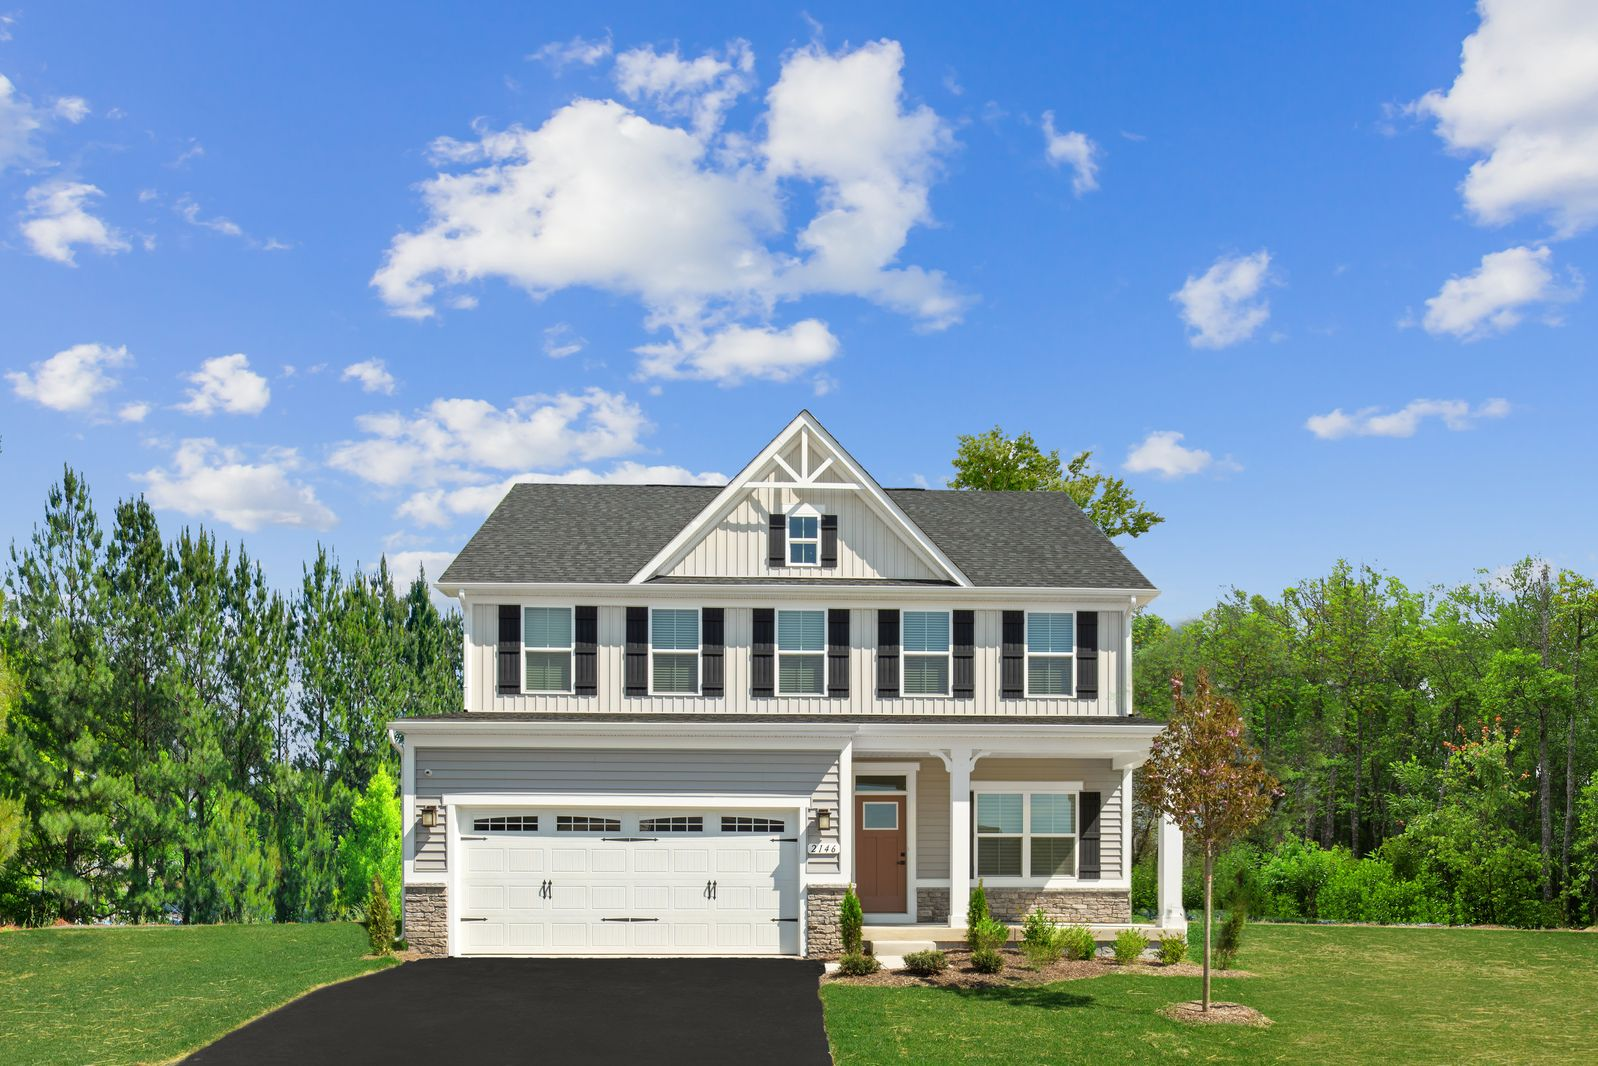 Welcome Home to Fayette Farms:The only new home community in West Allegheny Schools with pool and clubhouse. Established community only 10 minutes from Robinson.Click here to schedule your appointment.